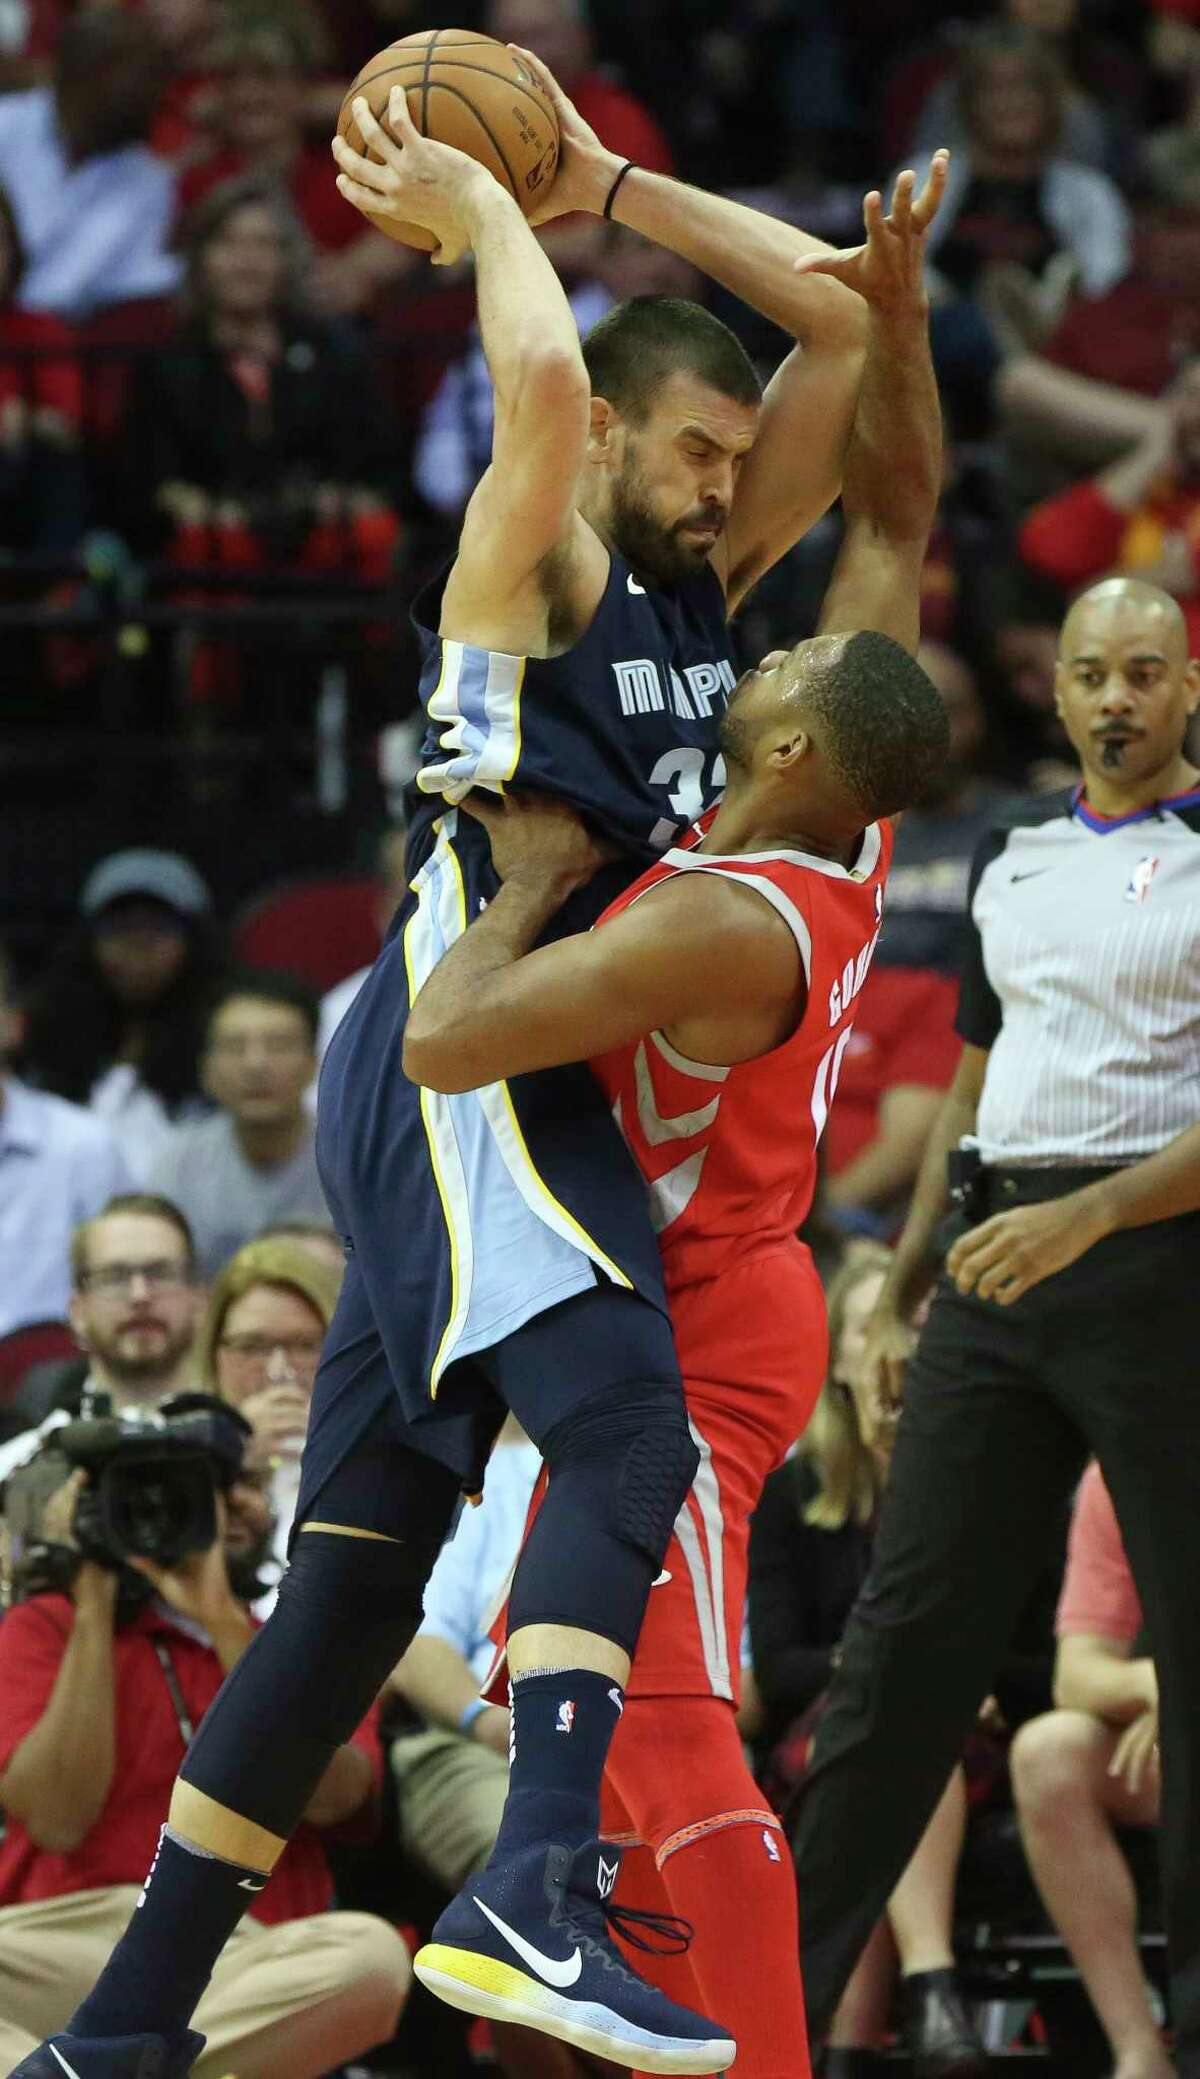 Rockets guard Eric Gordon, right, sacrifices his body to try to stop 7-1 Grizzlies center Marc Gasol in the paint during the second quarter Monday night.